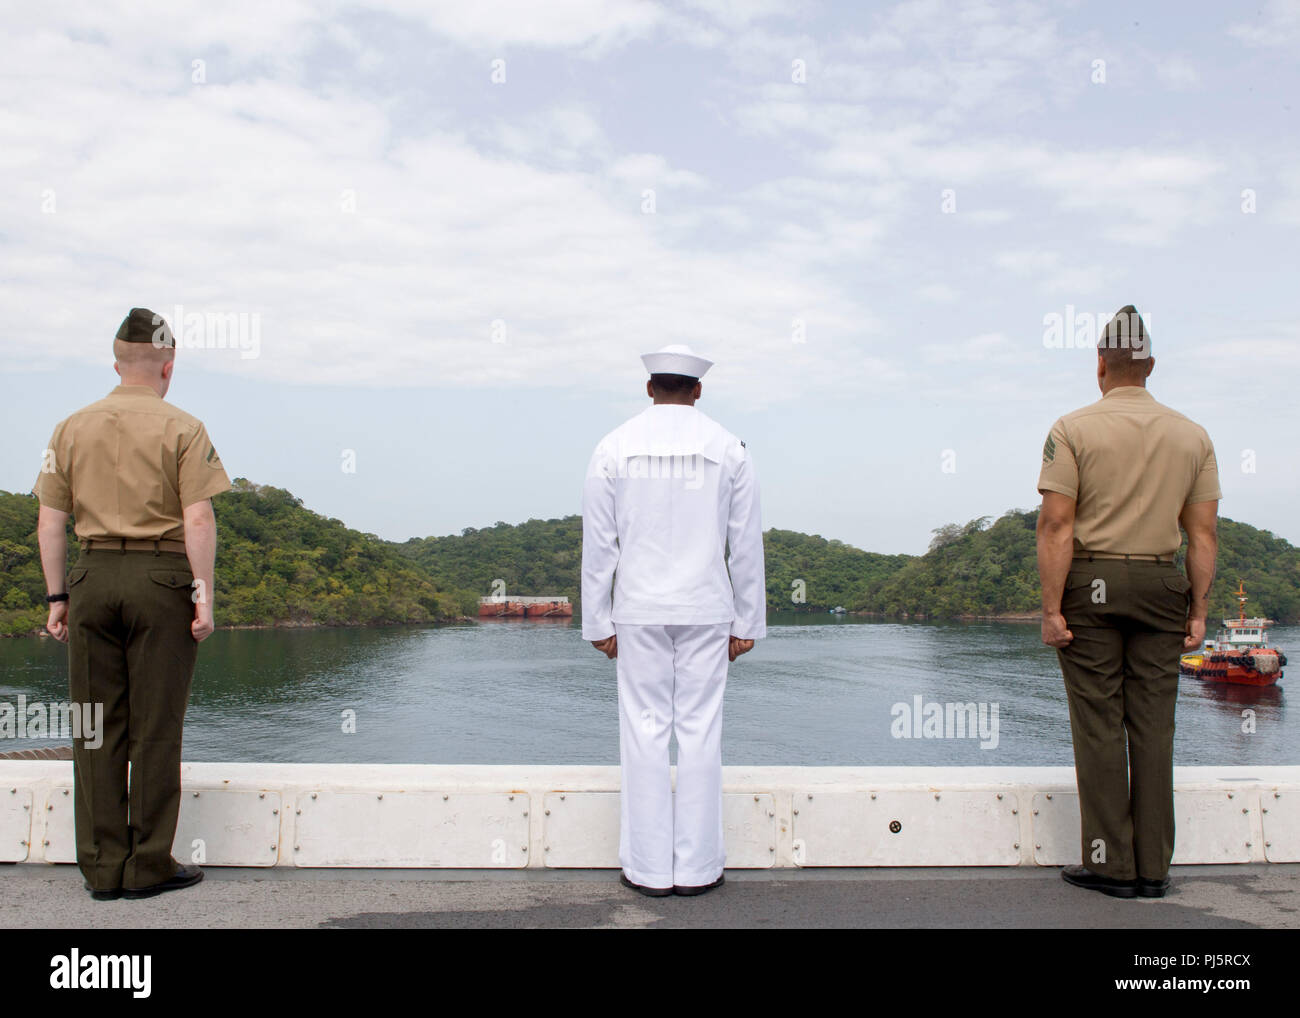 180824-N-PH222-0306 TRINCOMALEE, SRI LANKA (August 24, 2018) Sailors assigned to San Antonio-class amphibious transport dock USS Anchorage (LPD 23) and Marines assigned to 13th Marine Expeditionary Unit (MEU) man the rails before a scheduled port visit in Trincomalee, Sri Lanka during a regularly scheduled deployment of the Essex Amphibious Ready Group (ARG) and 13th MEU. Anchorage and the embarked Marines of the 13th MEU are conducting a theater security cooperation exercise with the Sri Lankan Navy and the Navy Marines. Part of a growing U.S.-Sri Lanka naval partnership, the exercise is also - Stock Image